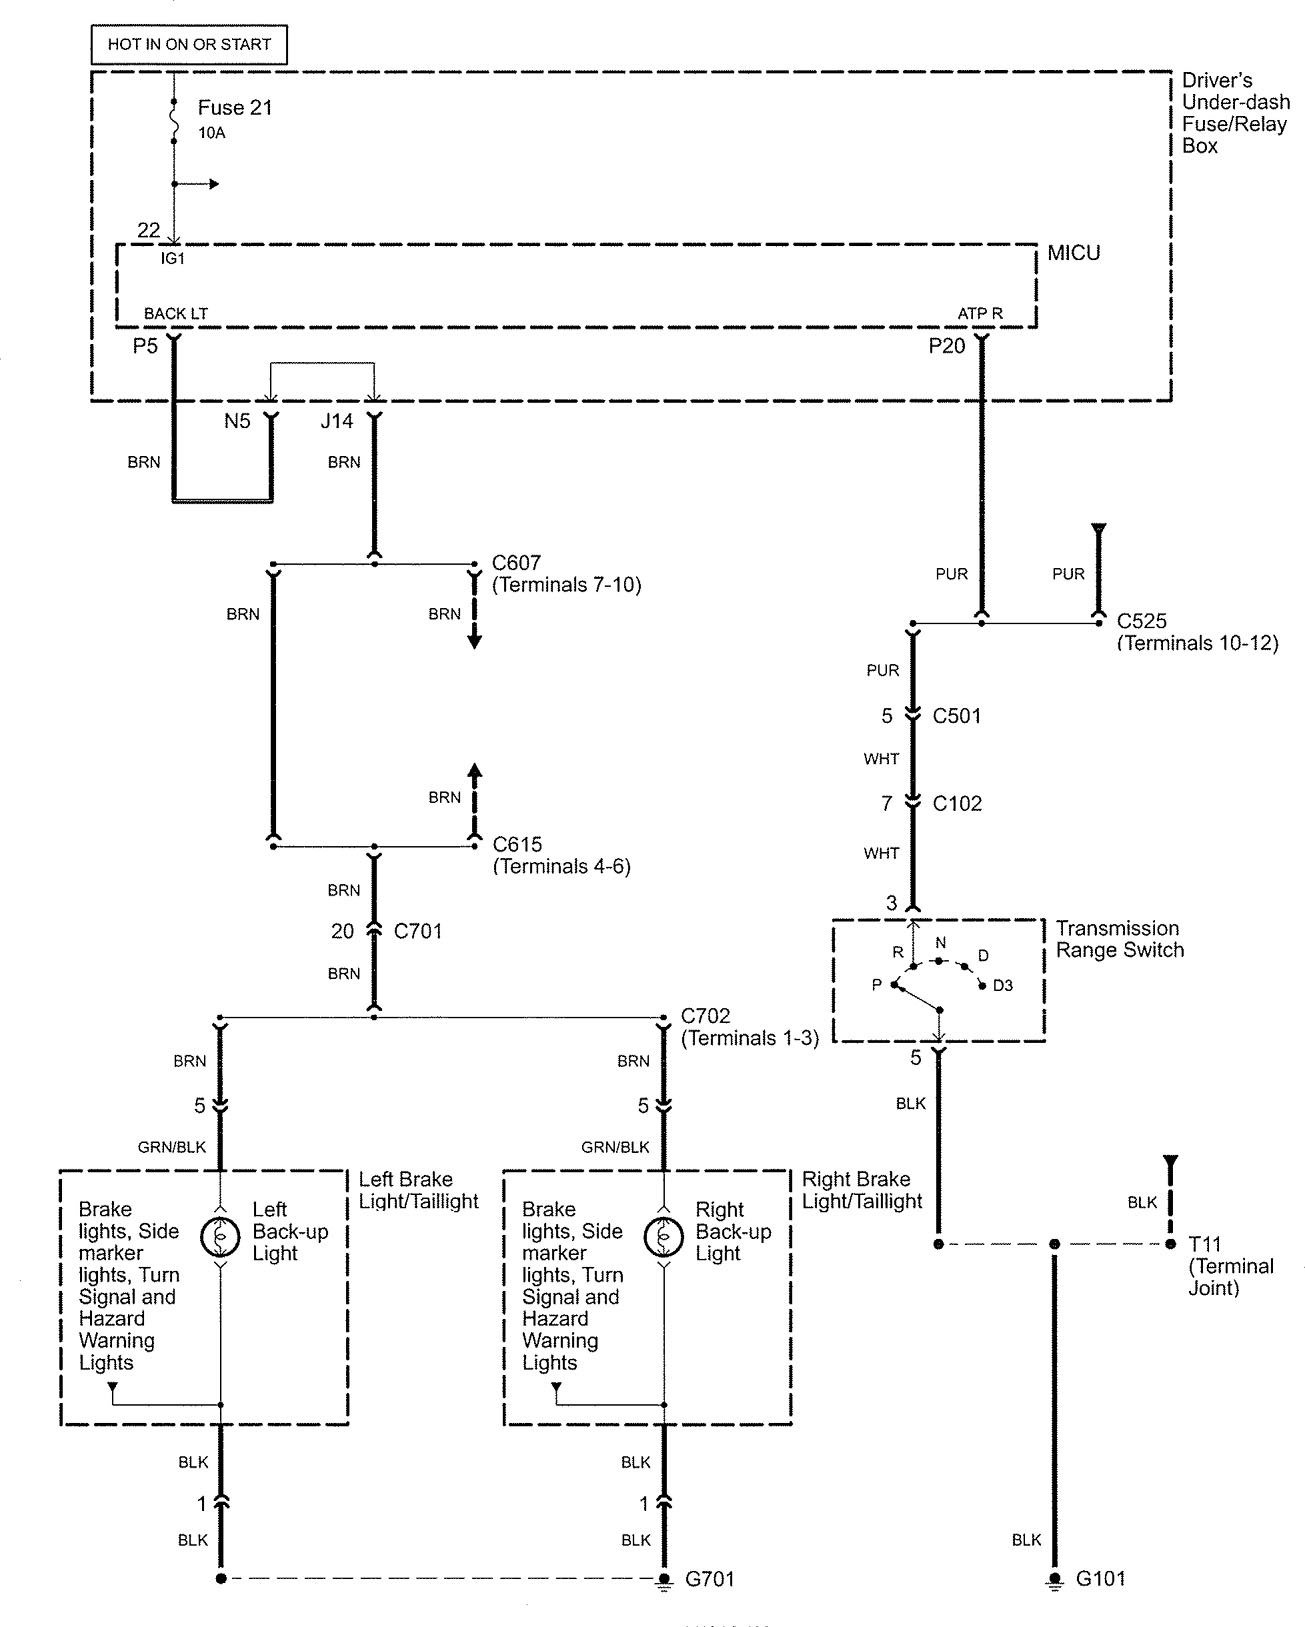 2005 rl transmission diagram trusted wiring diagram subaru baja wiring diagram acura rl (2005) wiring diagrams reverse lamp carknowledge custom acura rl custom trunk stereo 2005 rl transmission diagram